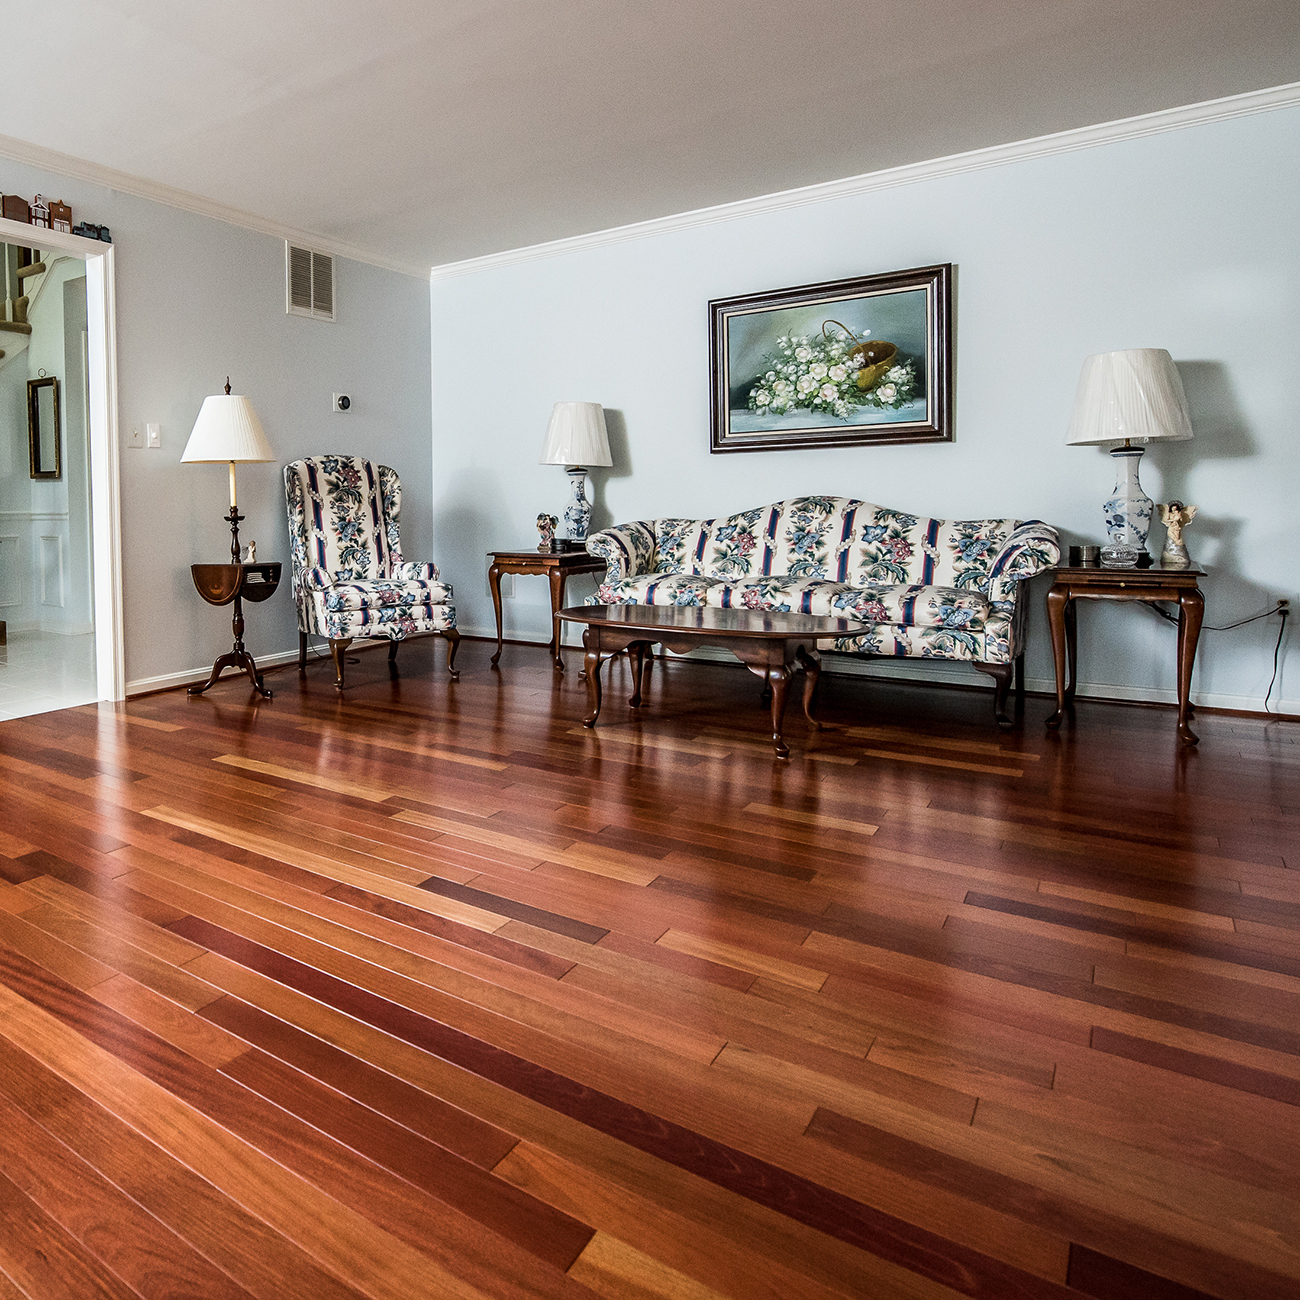 Where to install hardwood floors